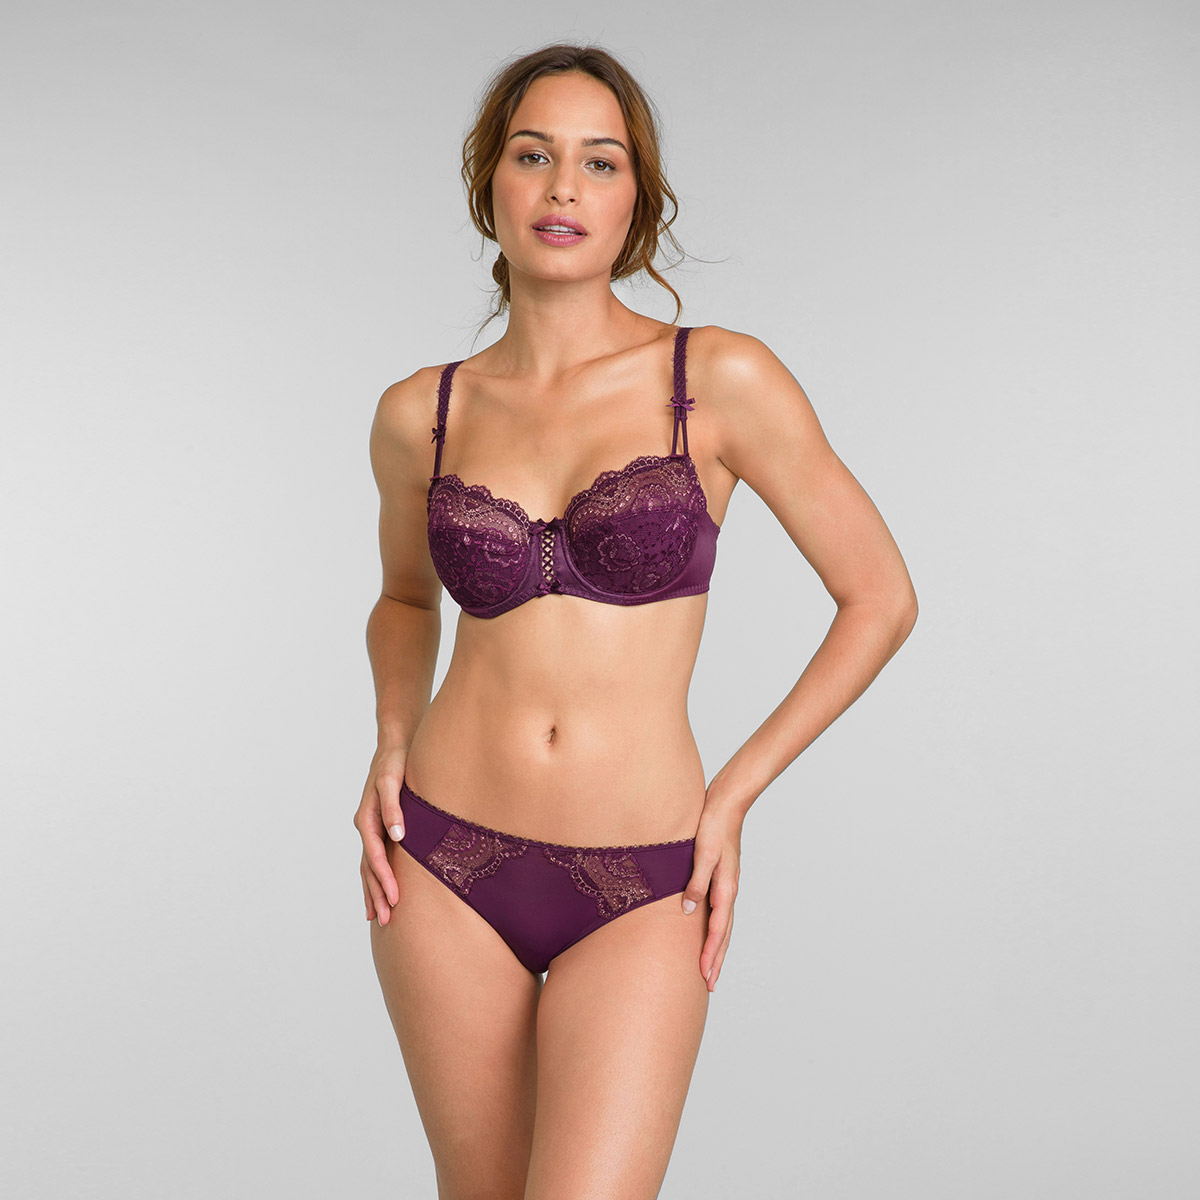 Bikini Knickers in Dark Berry Lurex Flower Elegance, , PLAYTEX